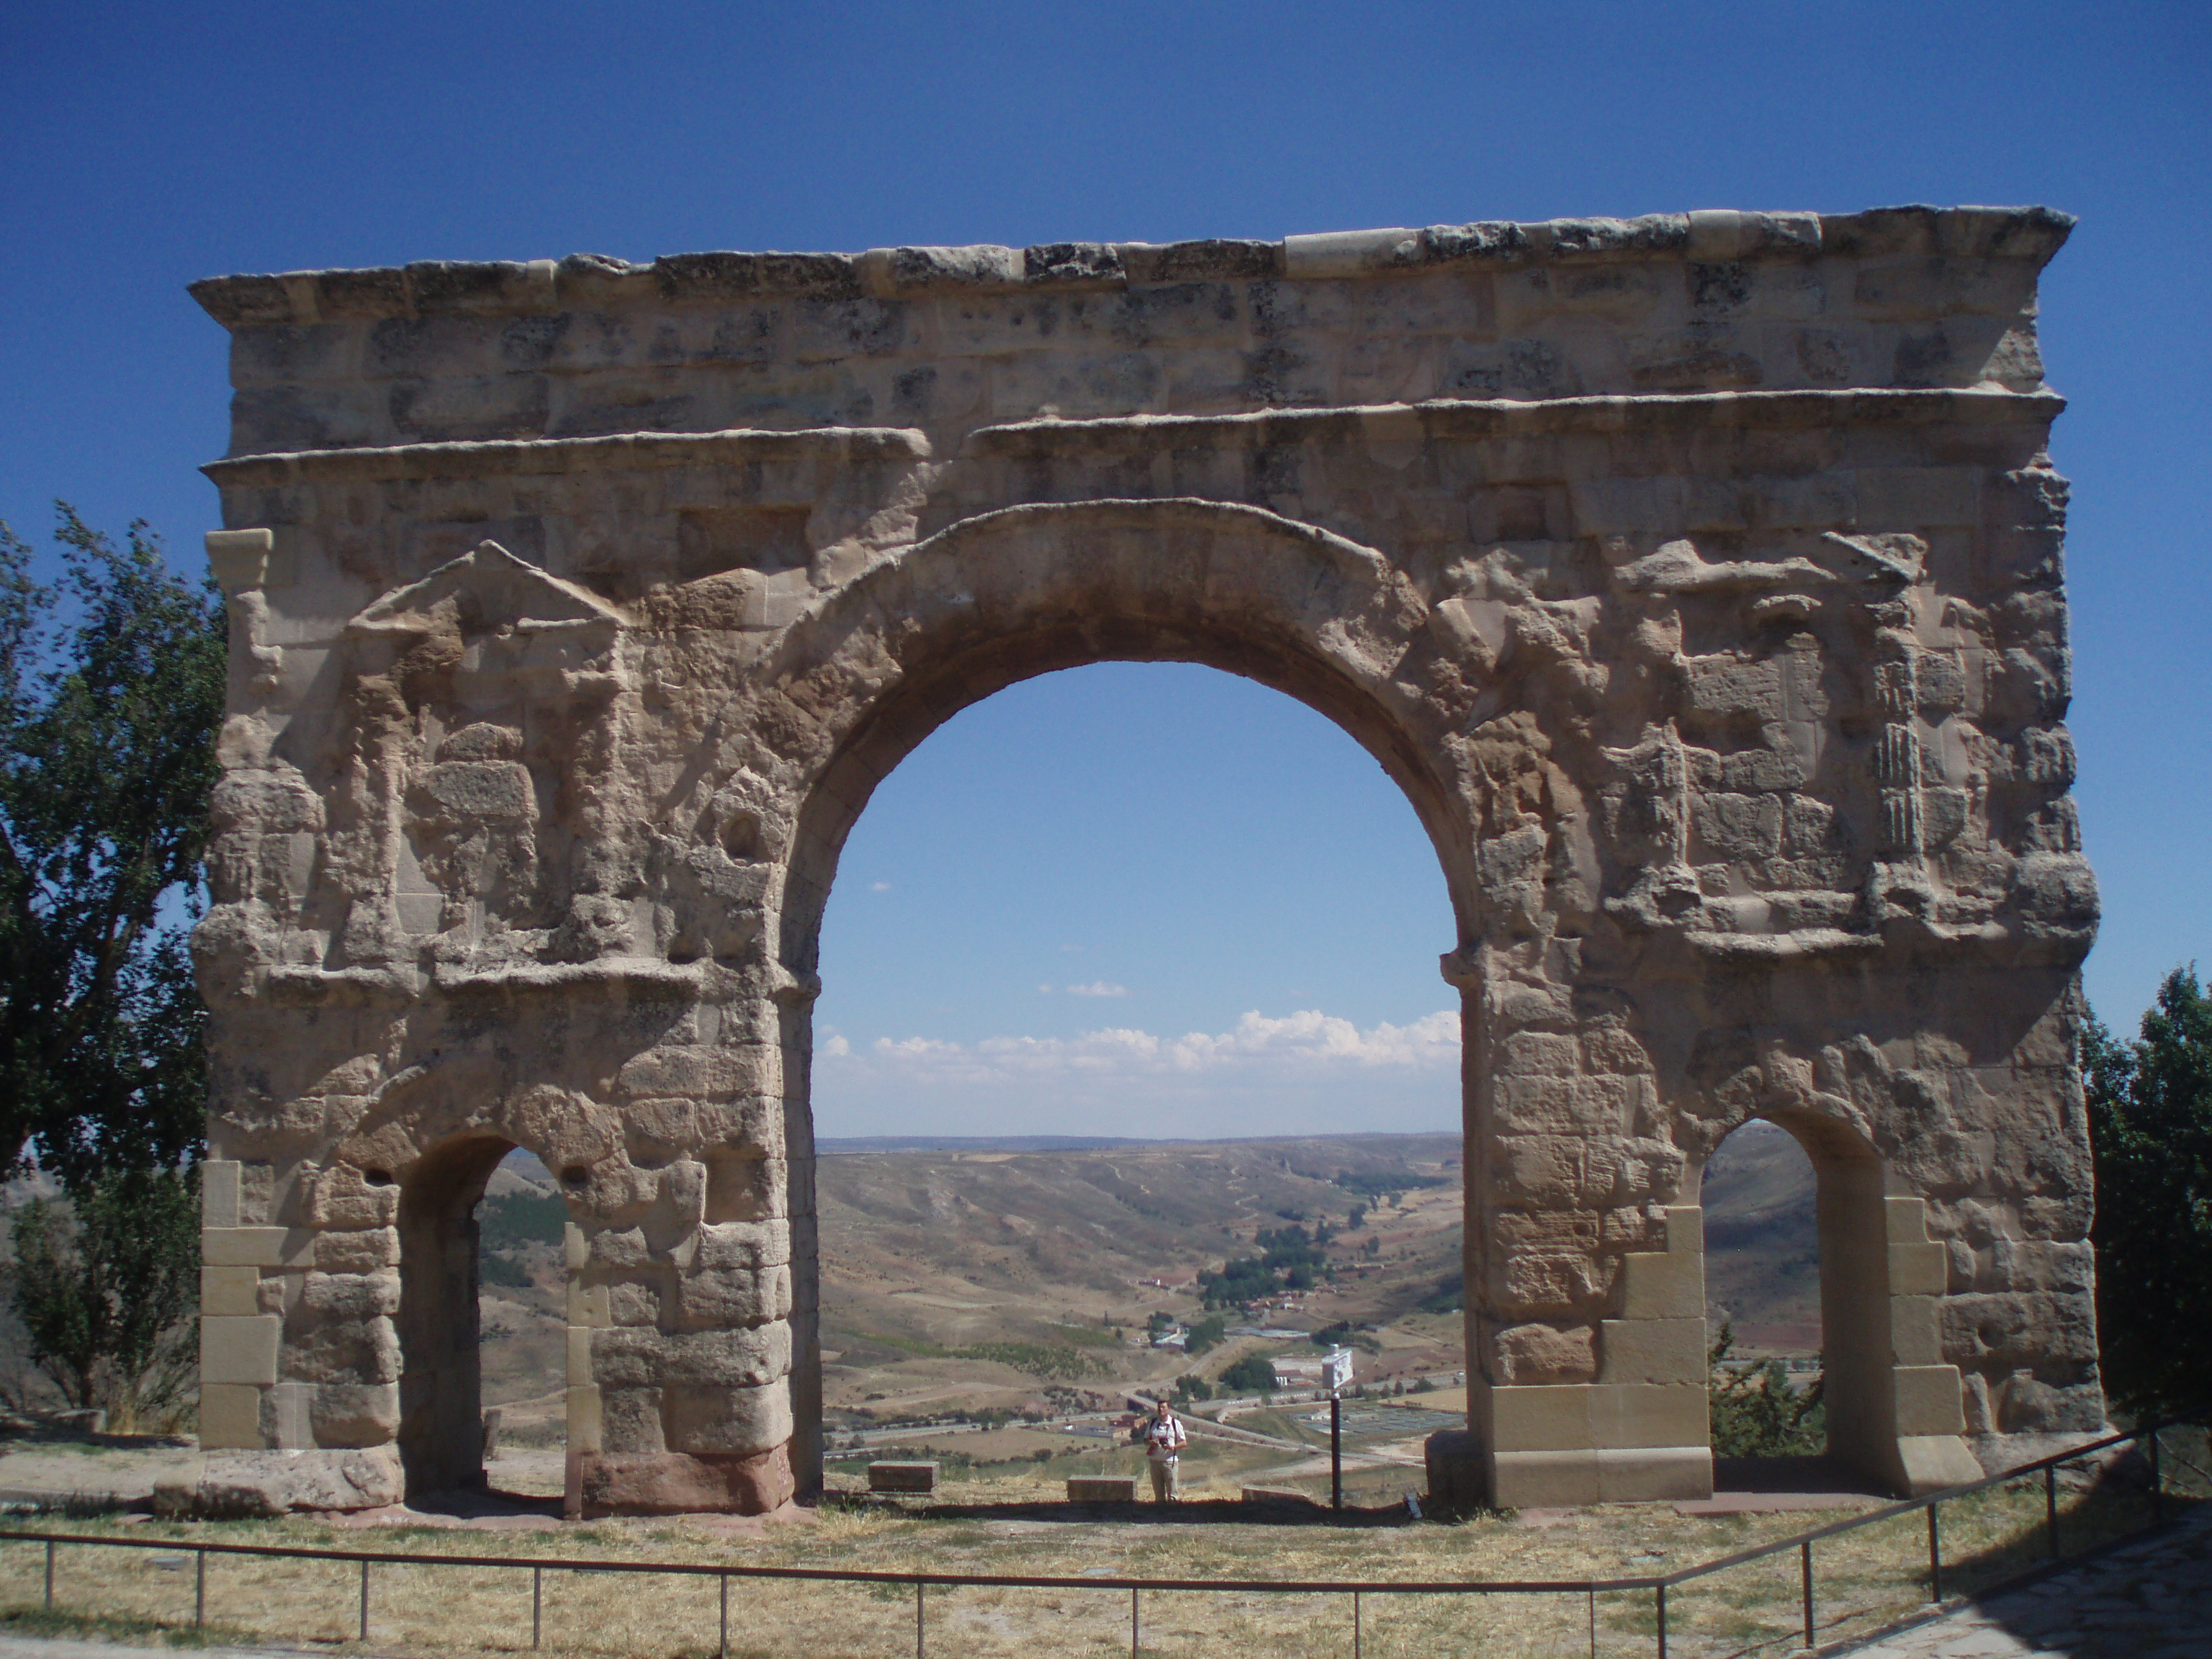 Roman Architecture Arches roman architecture, public works and numerals - lessons - tes teach